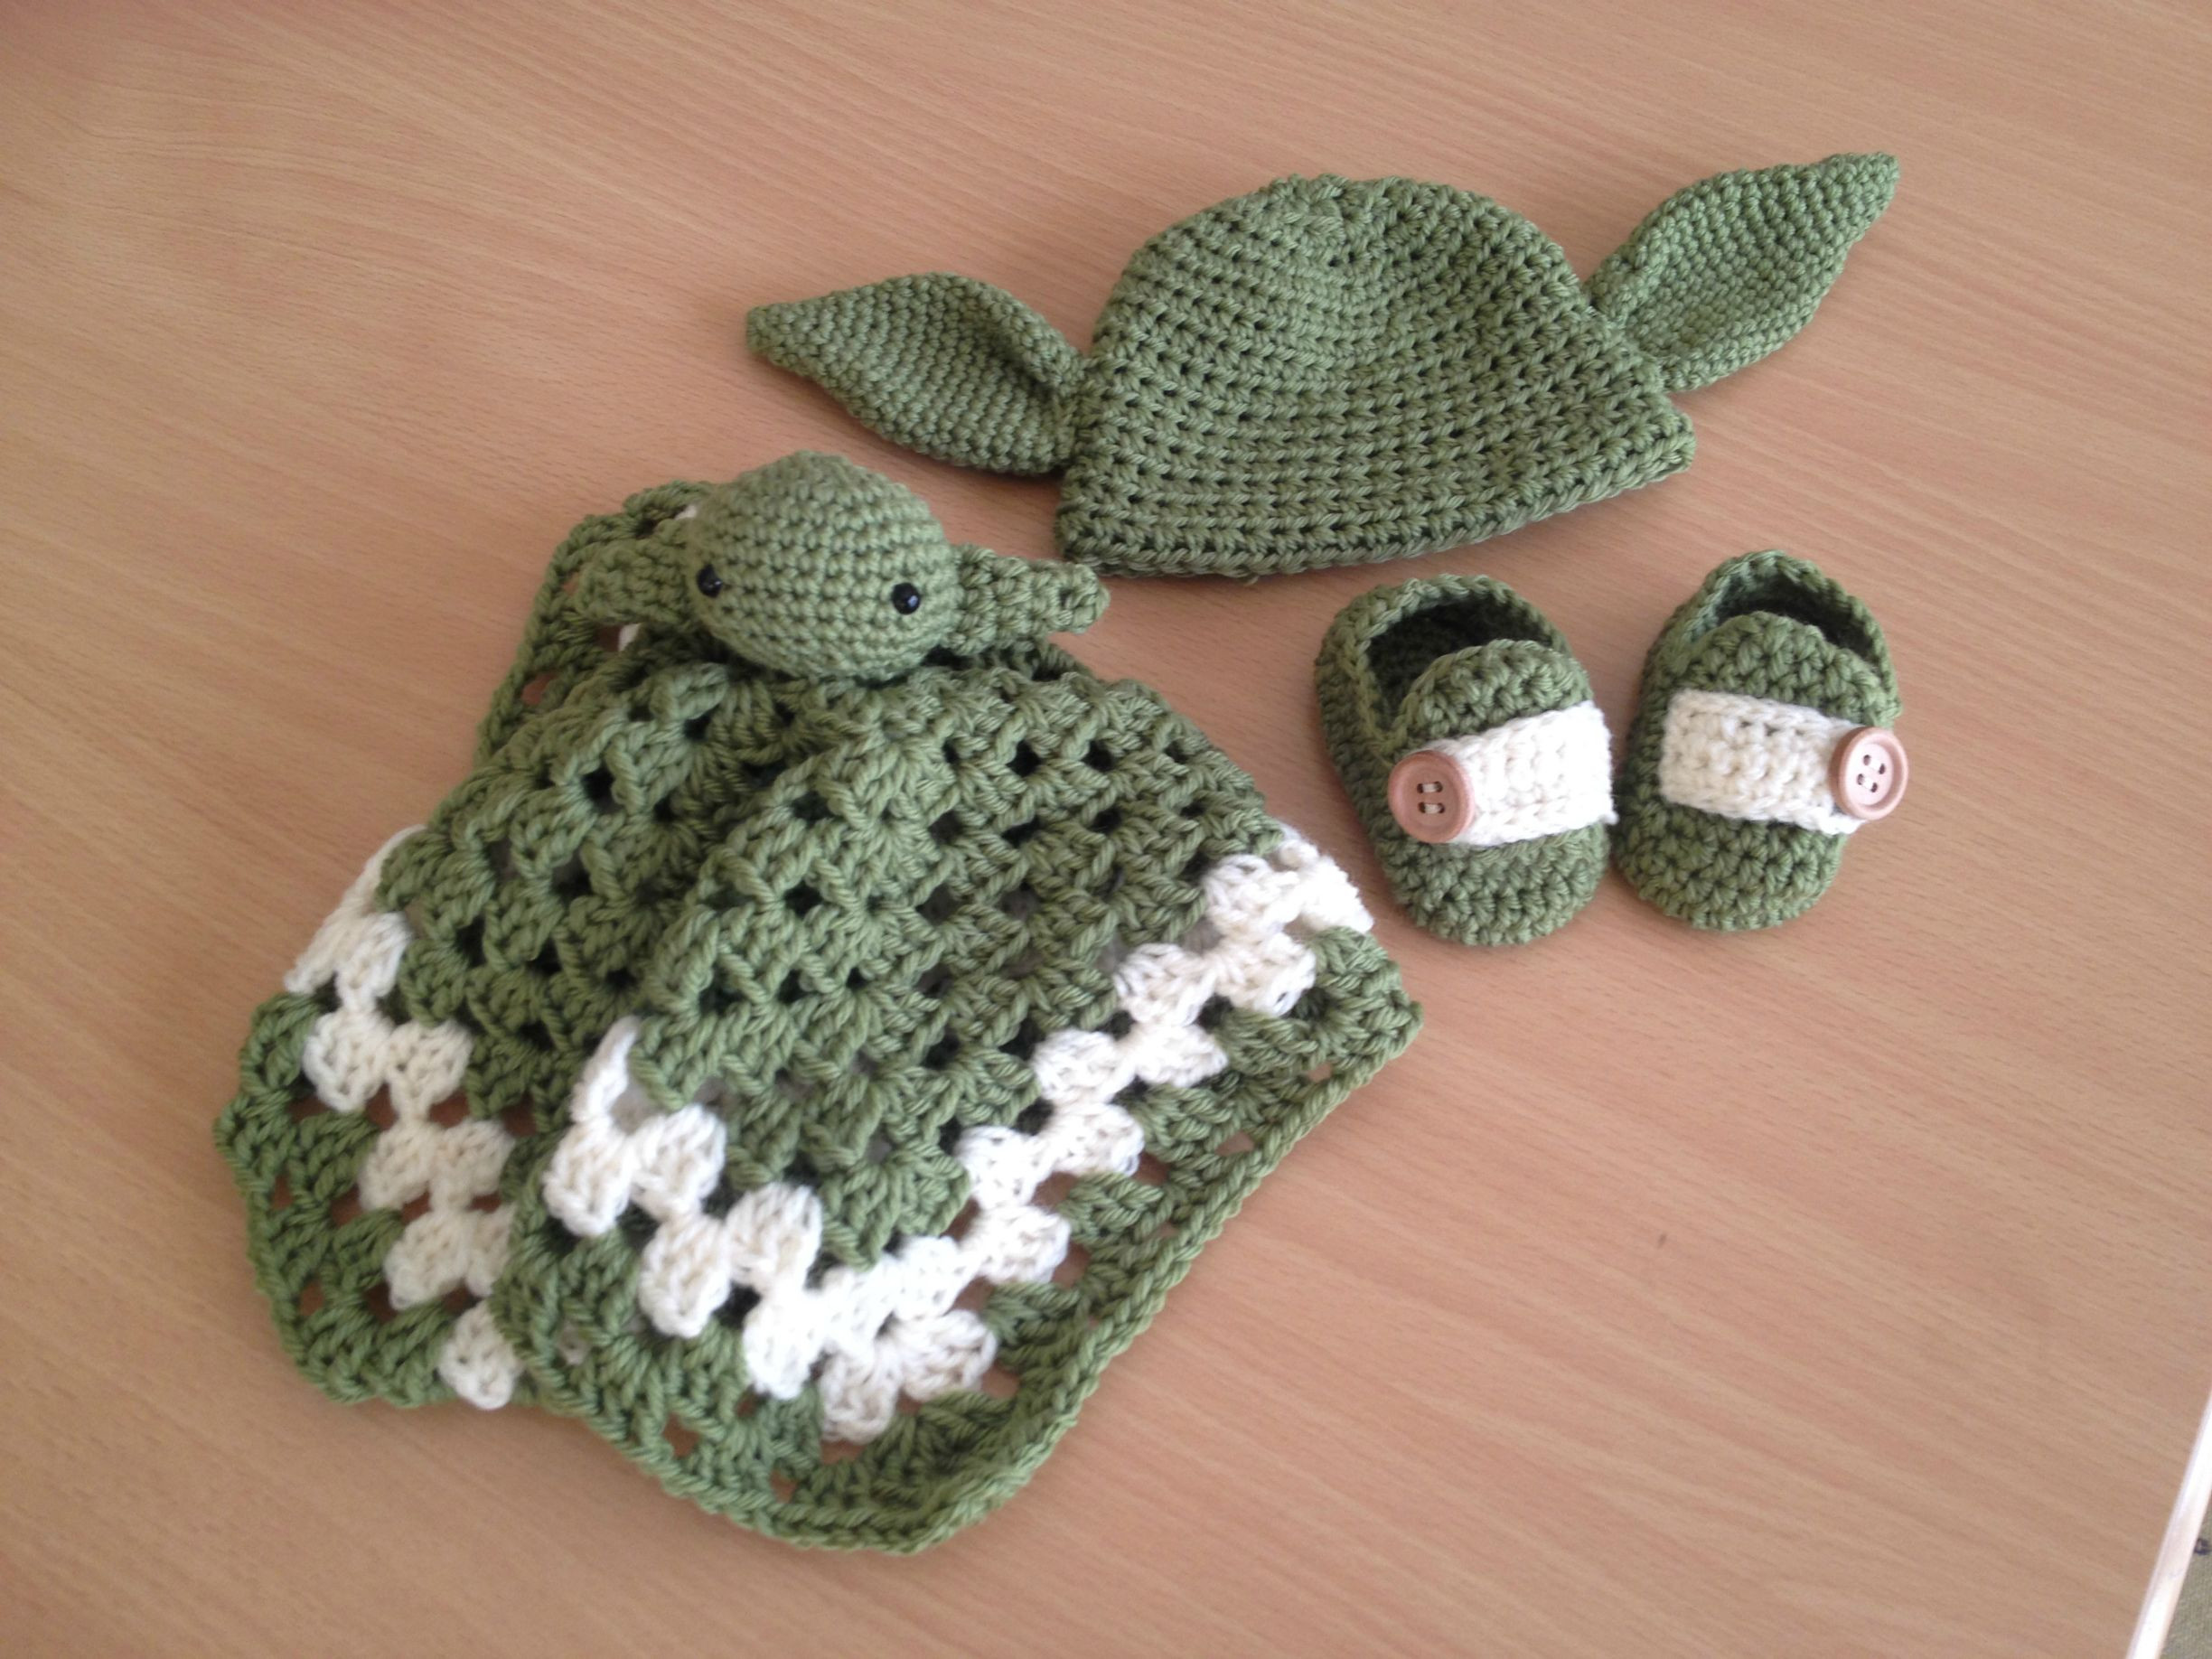 Baby Crochet Patterns Lovely Baby S First Crocheted Yoda Outfit — Fashion Of Fresh 41 Ideas Baby Crochet Patterns